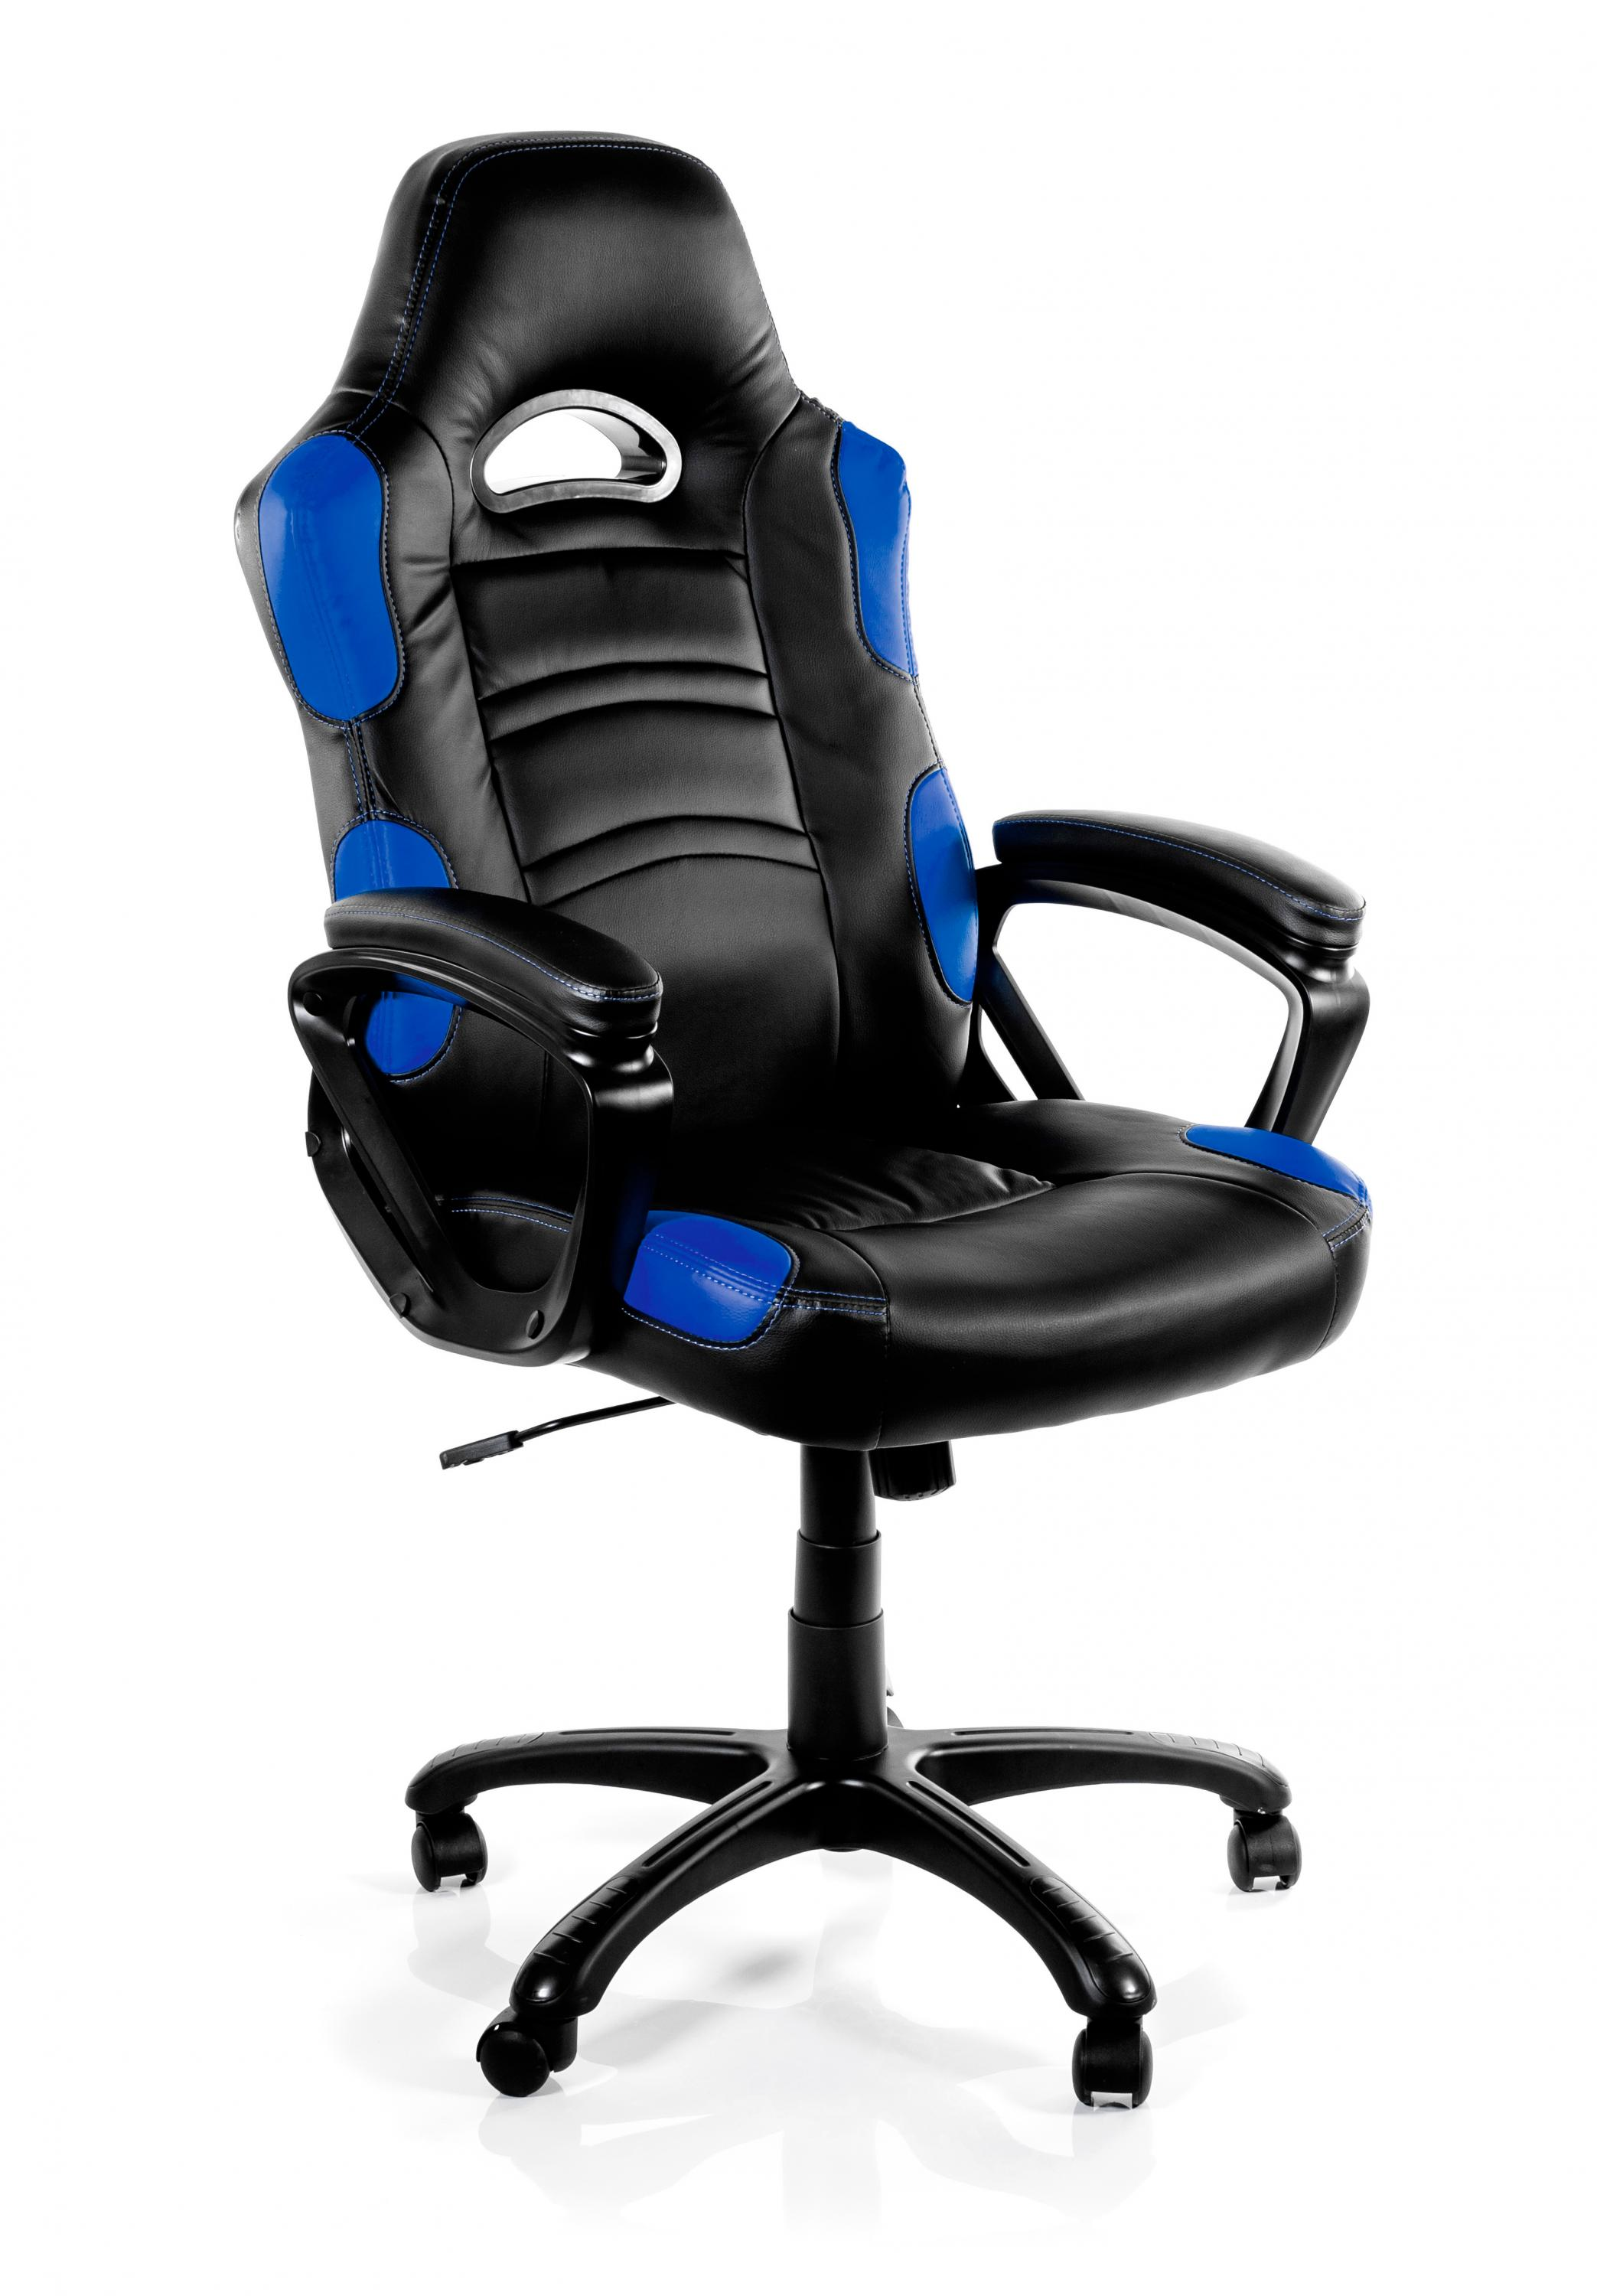 10 best pc gaming chairs in 2015 gamers decide for Chaise jysk